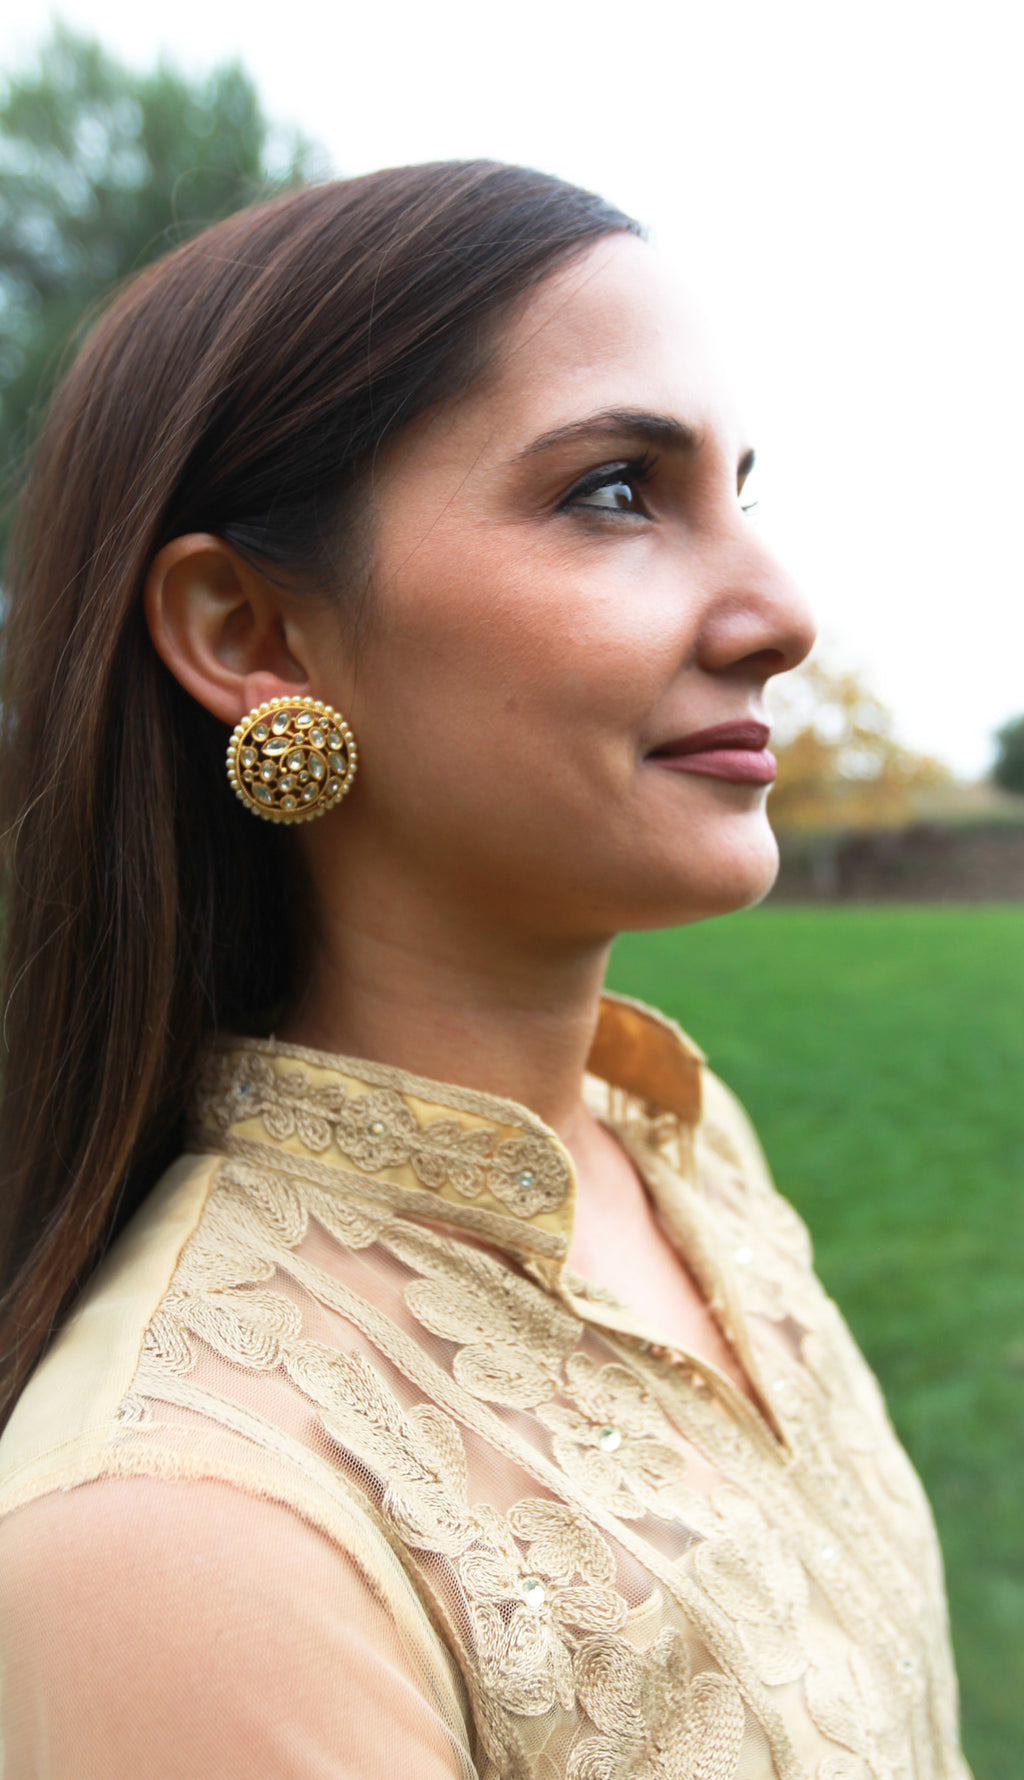 Nishita Earrings - Design 4